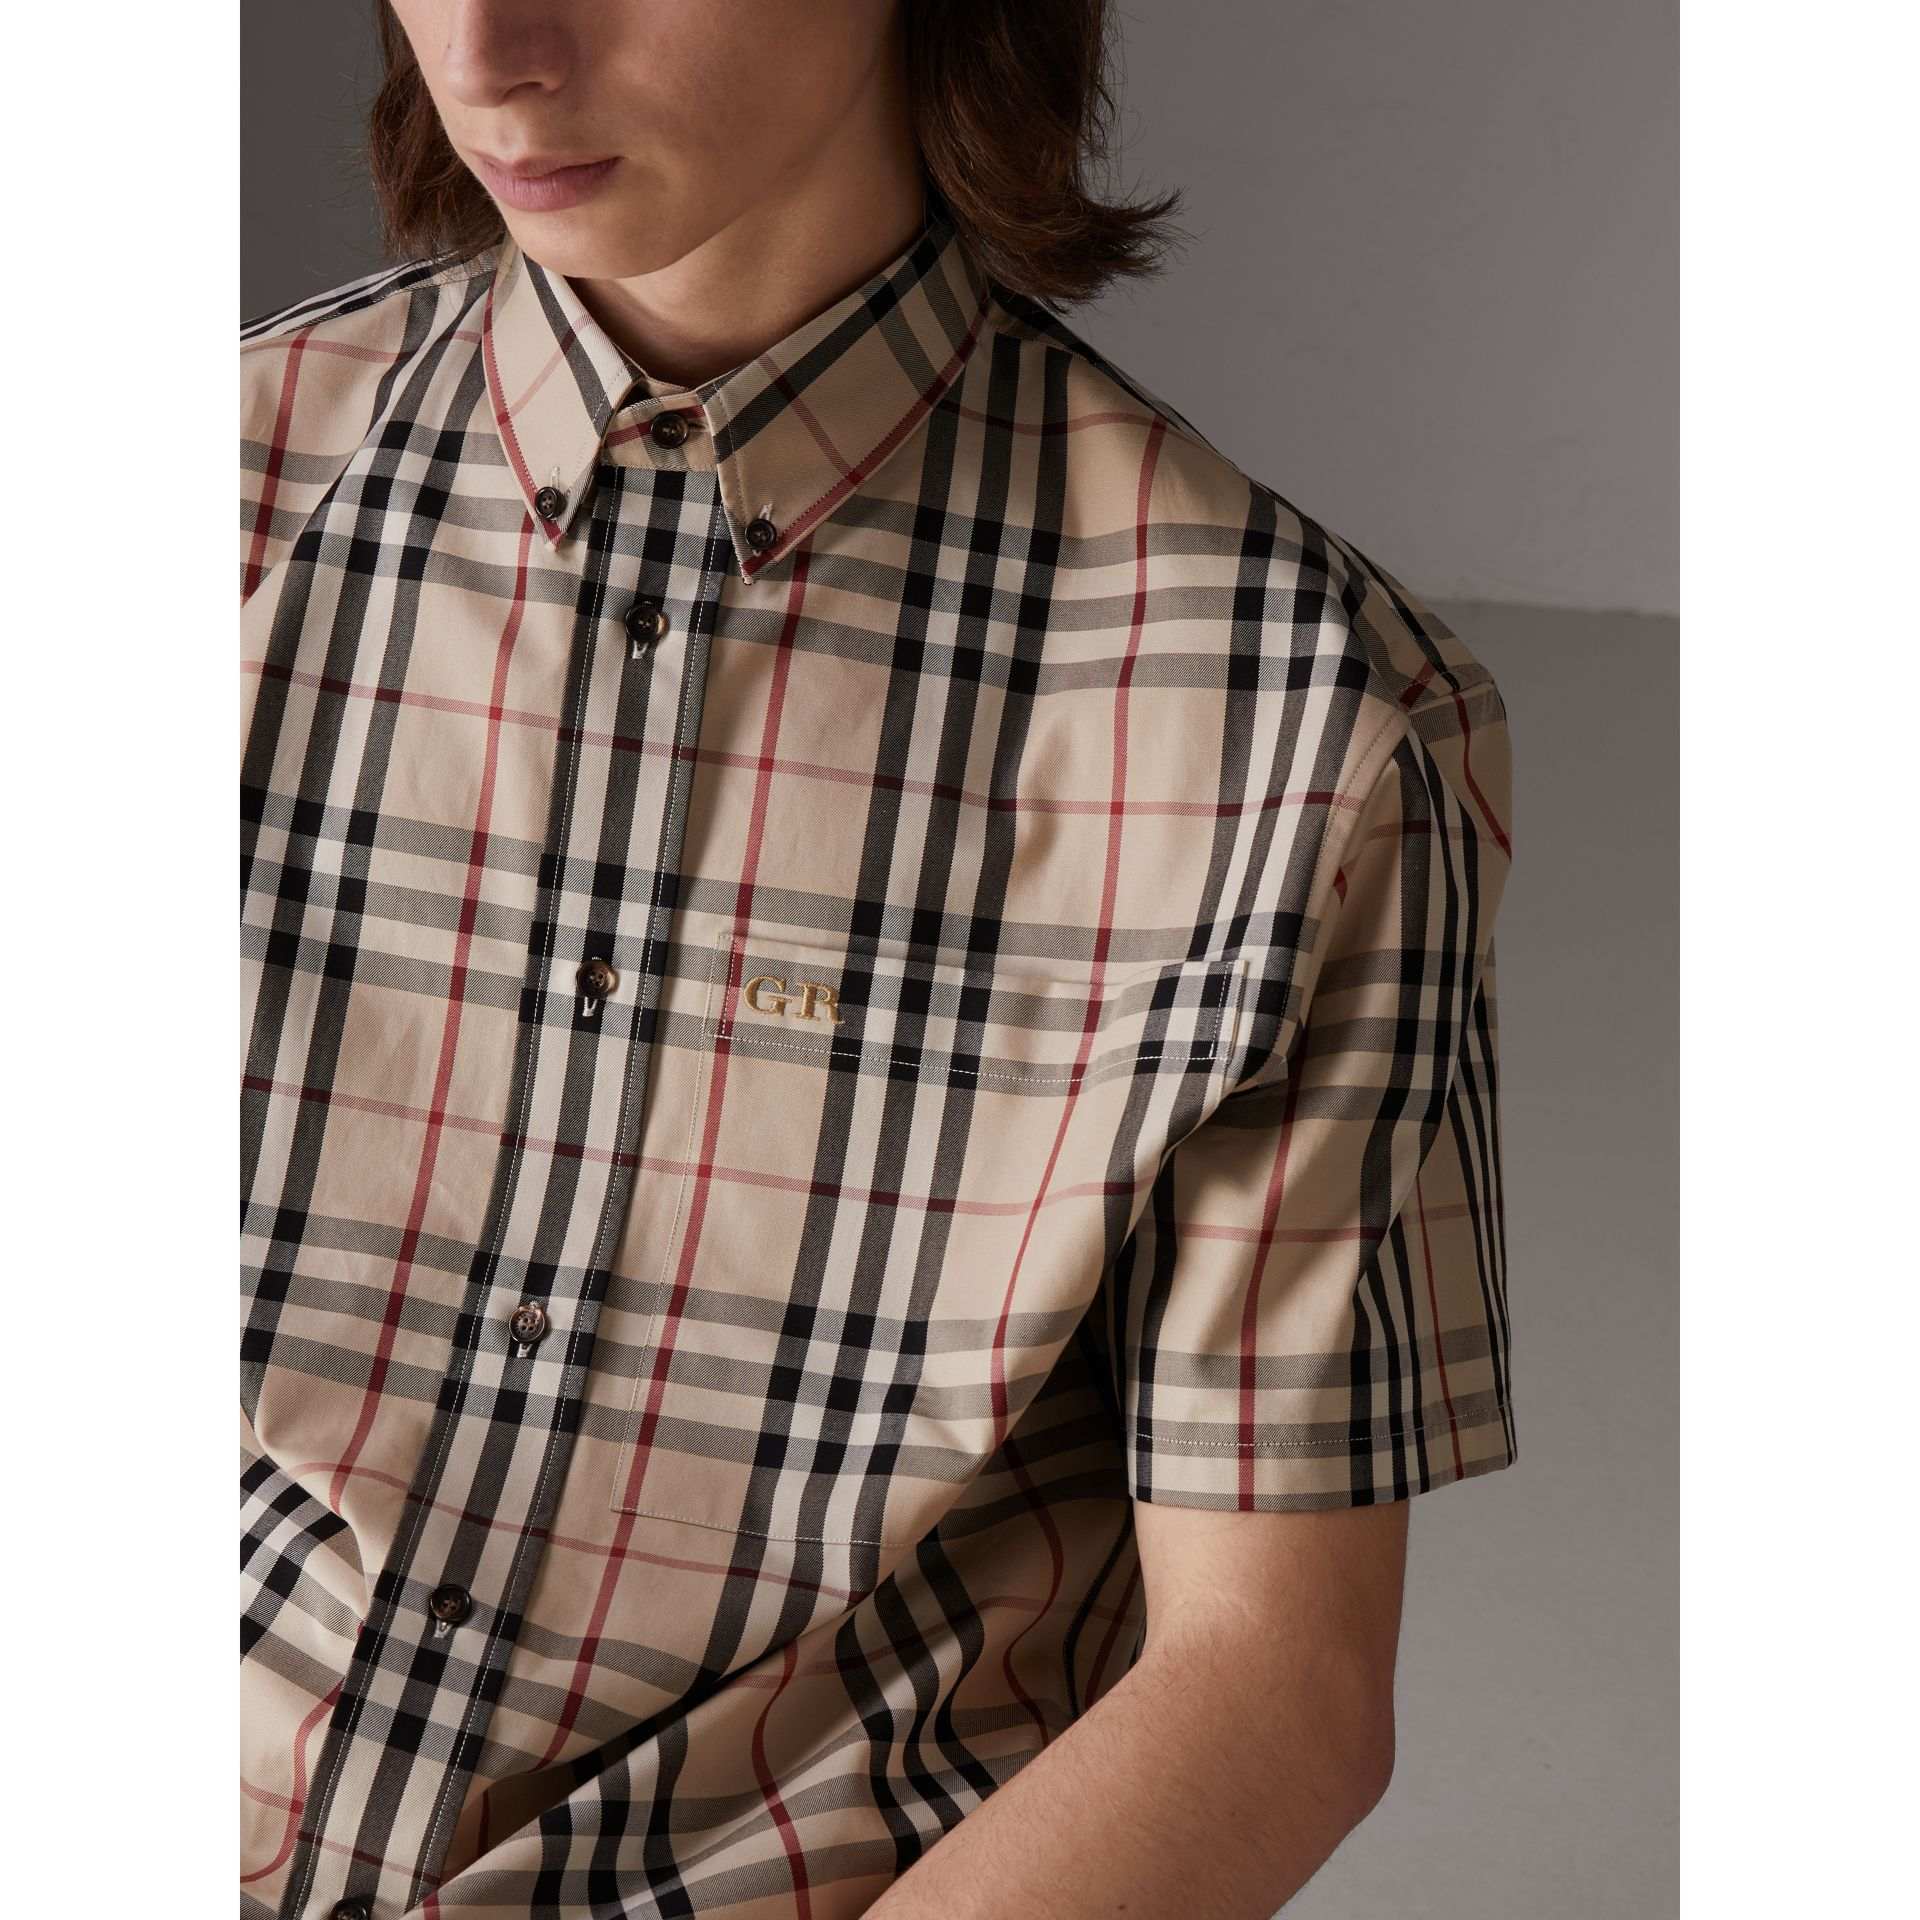 Gosha x Burberry Short-sleeve Check Shirt in Honey - Men | Burberry United States - gallery image 1